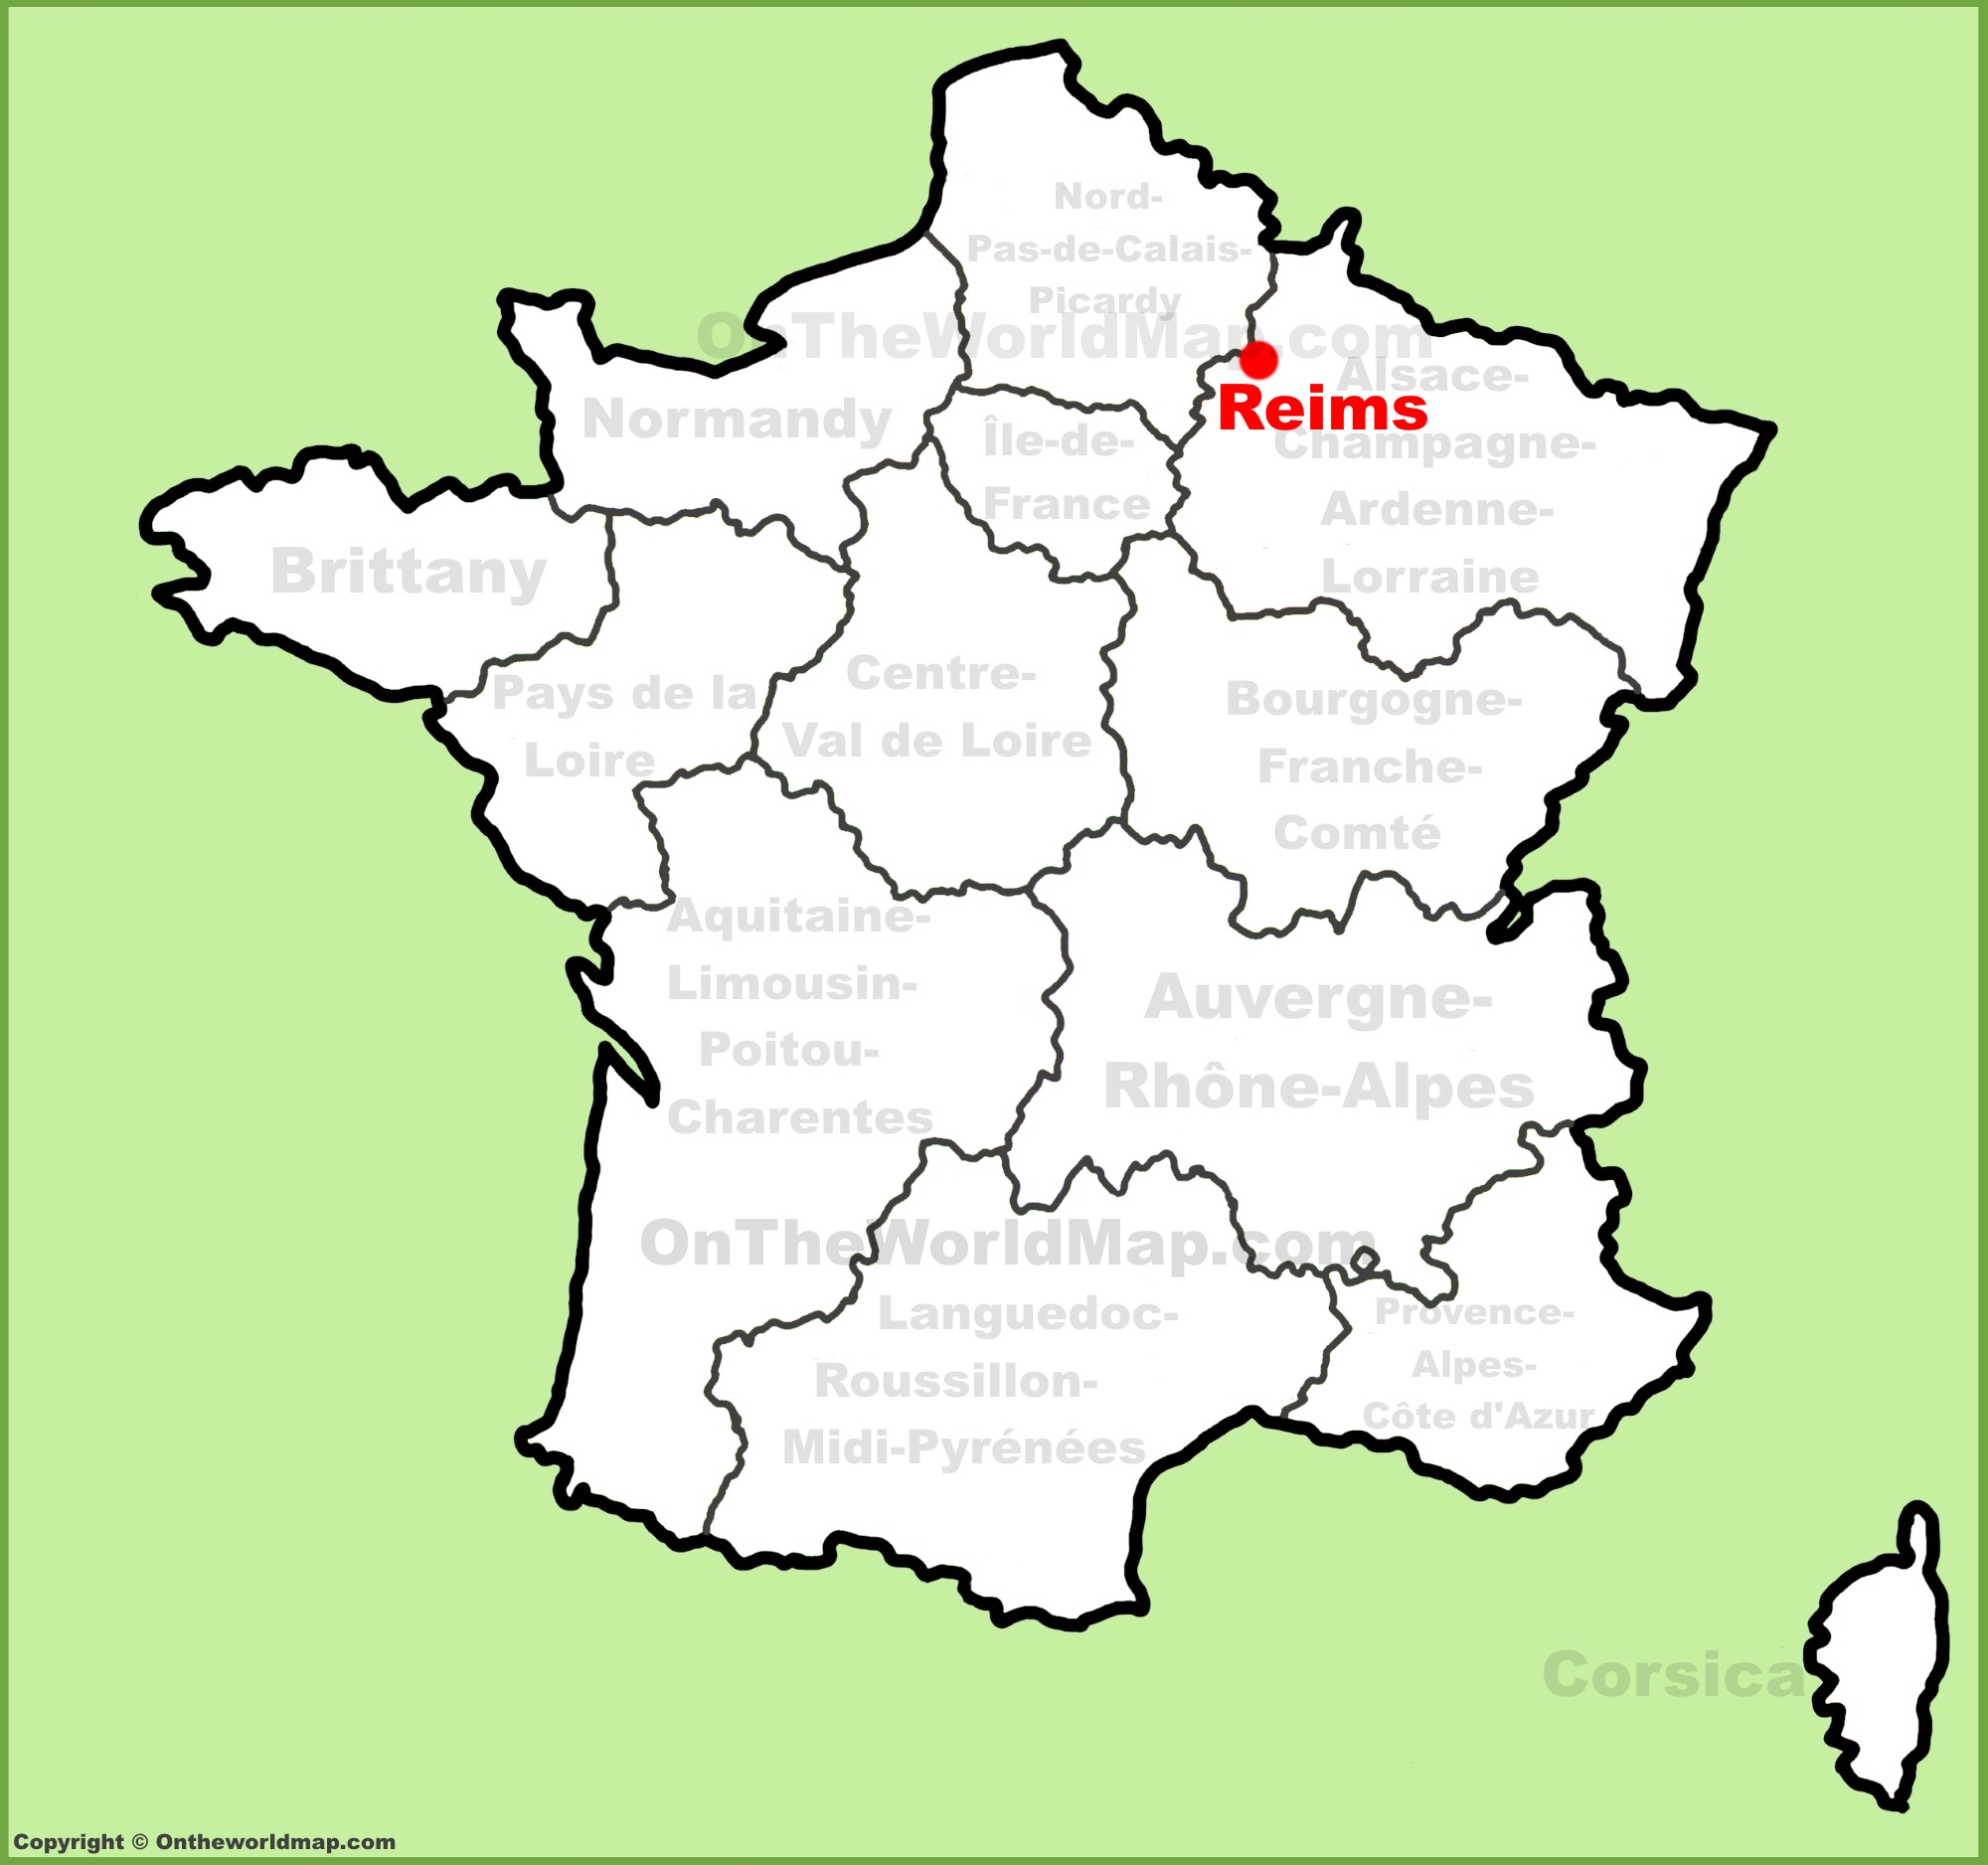 Reims location on the France map